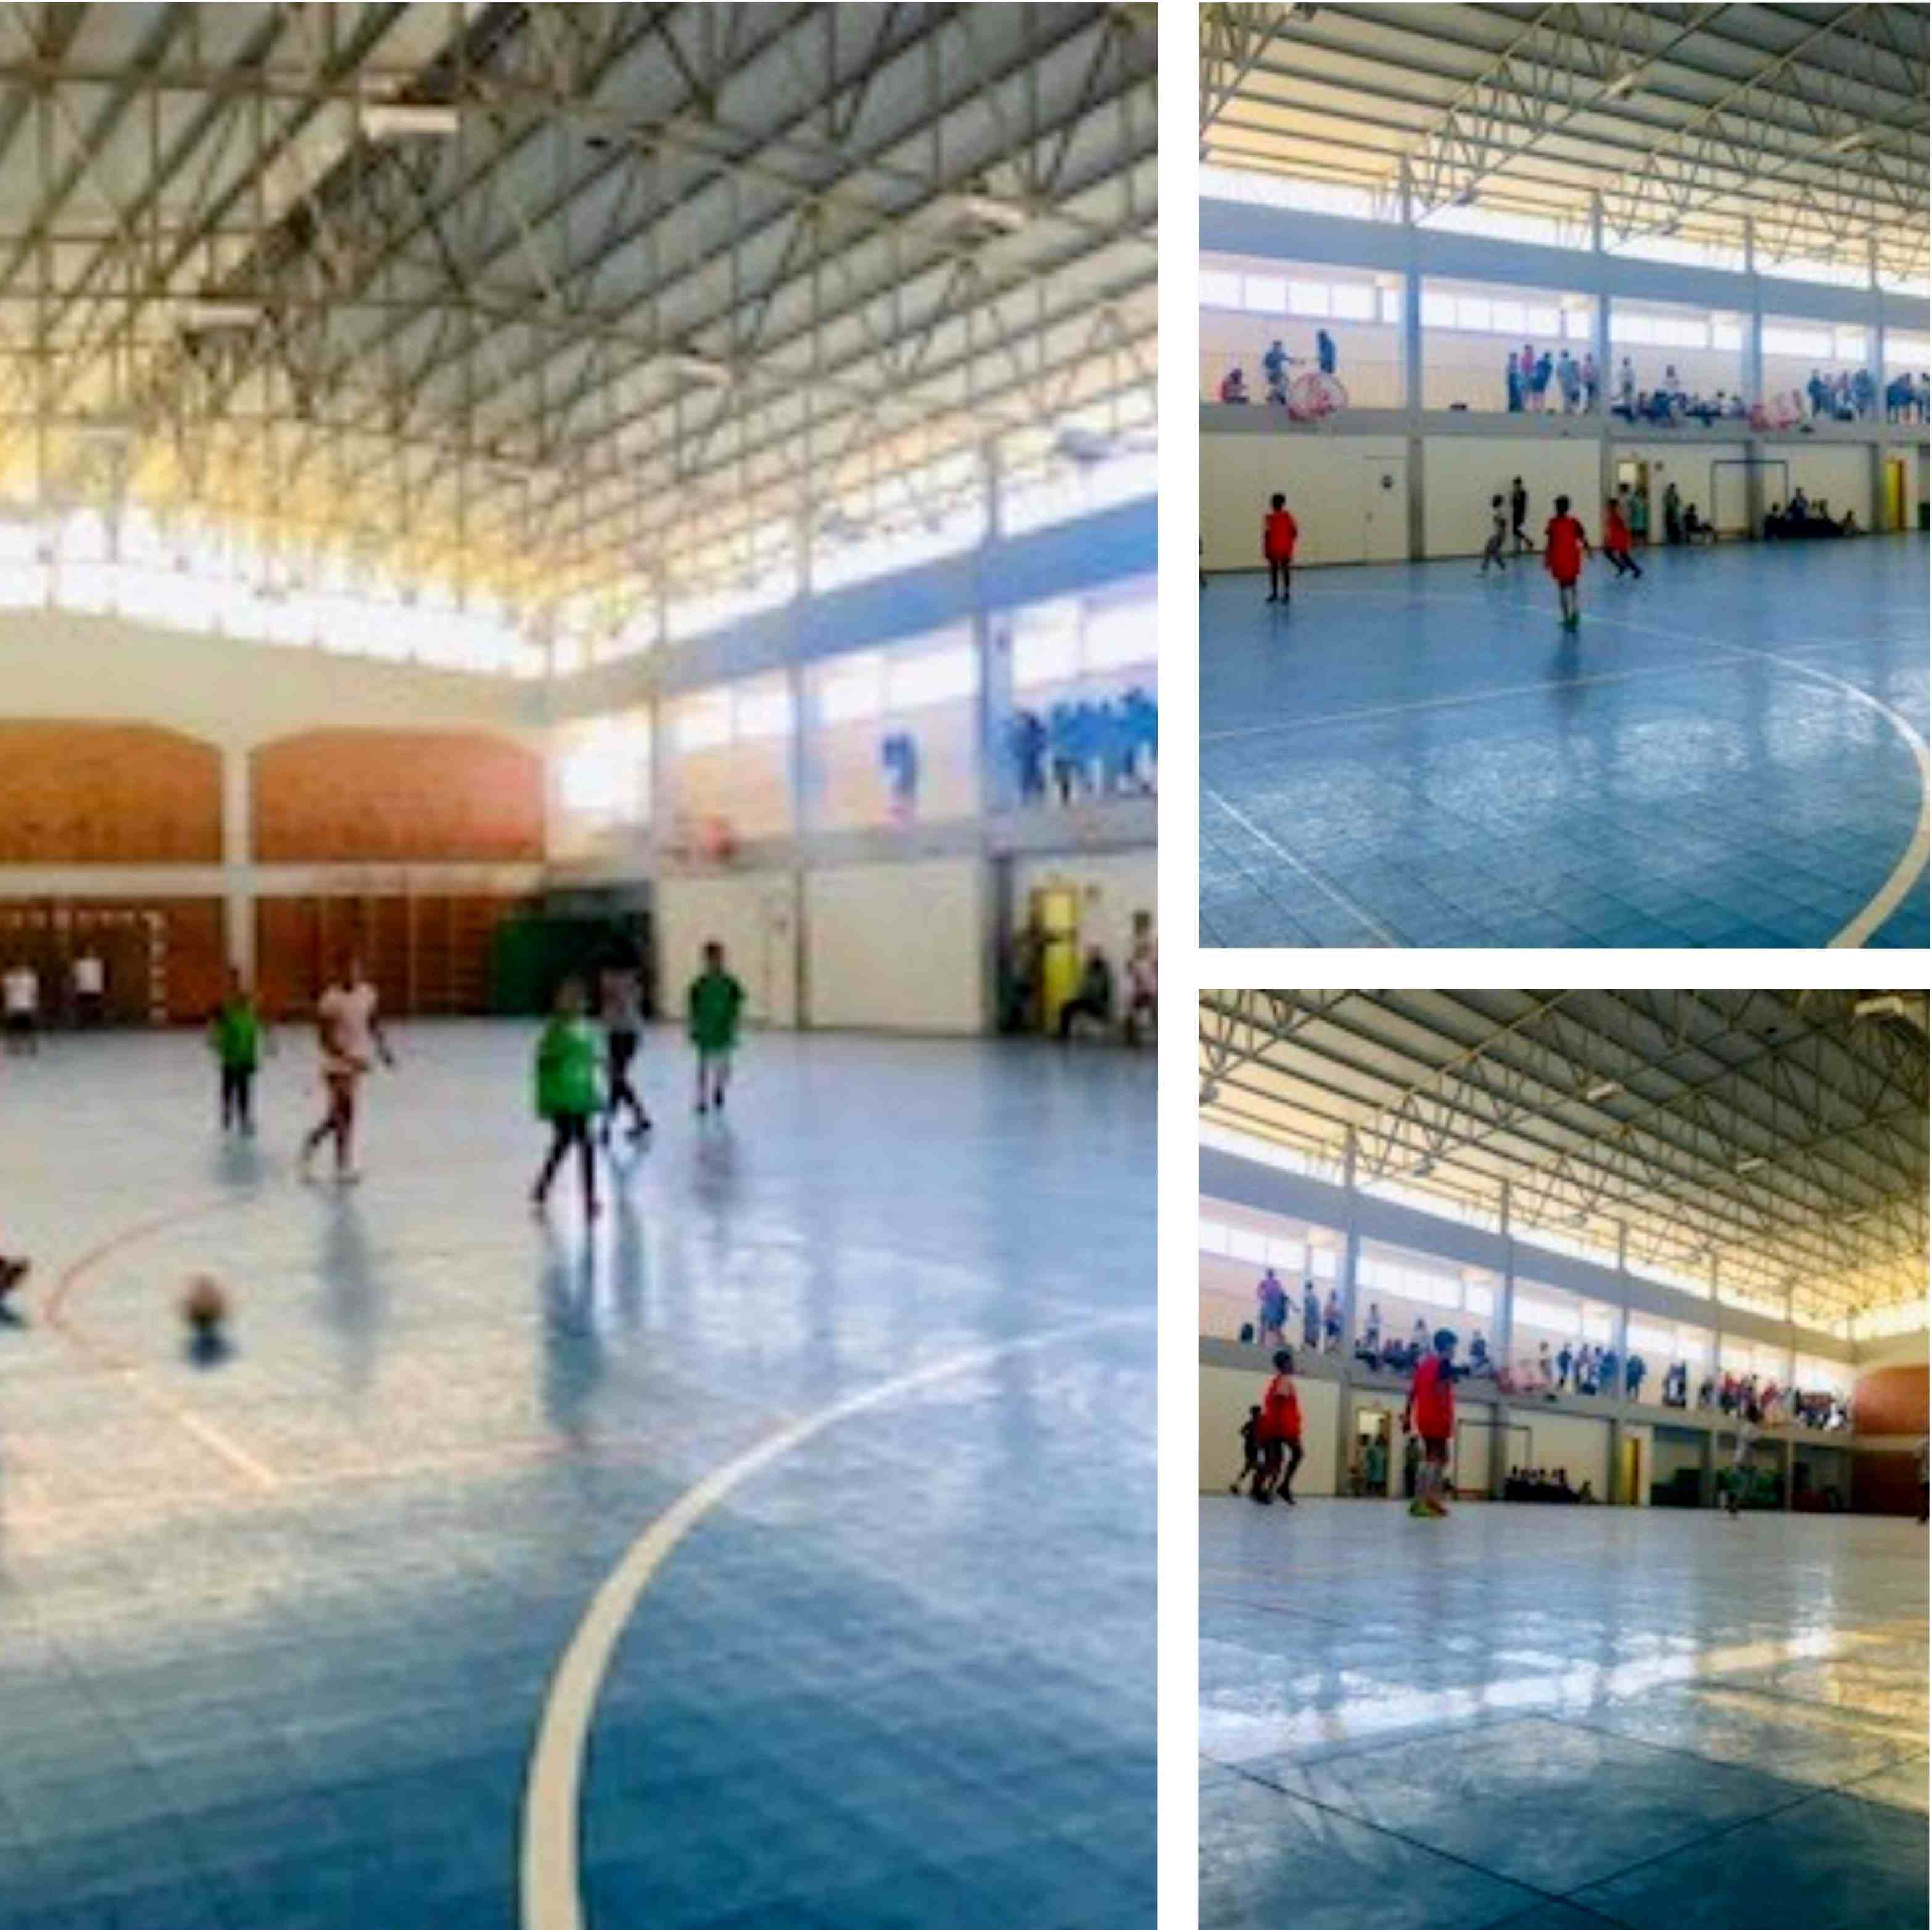 torneio futsal19 collage